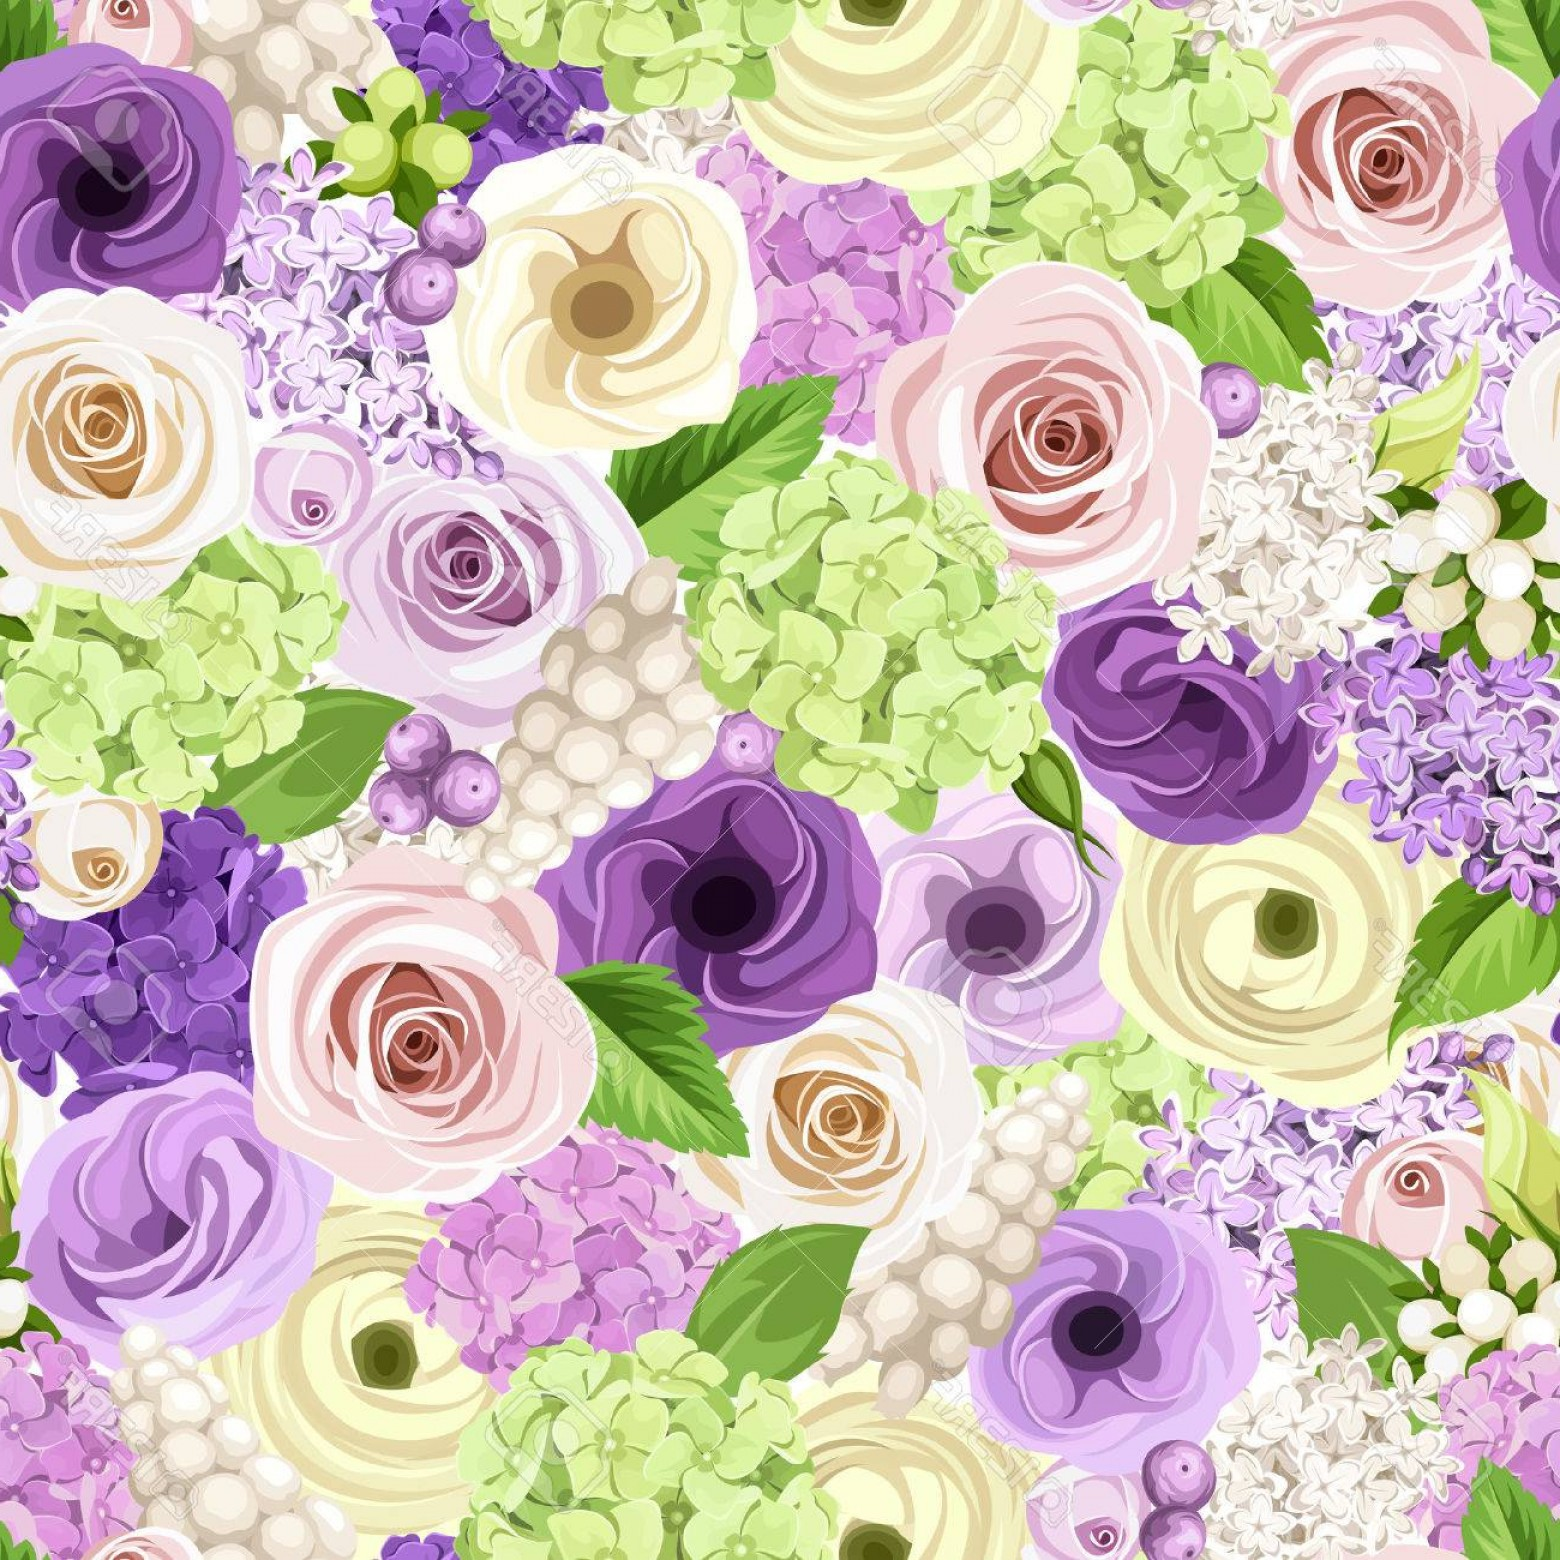 Purple Green And White Vector: Photostock Vector Vector Seamless Background With Pink Purple White And Green Roses Lisianthuses Ranunculus Lilac And